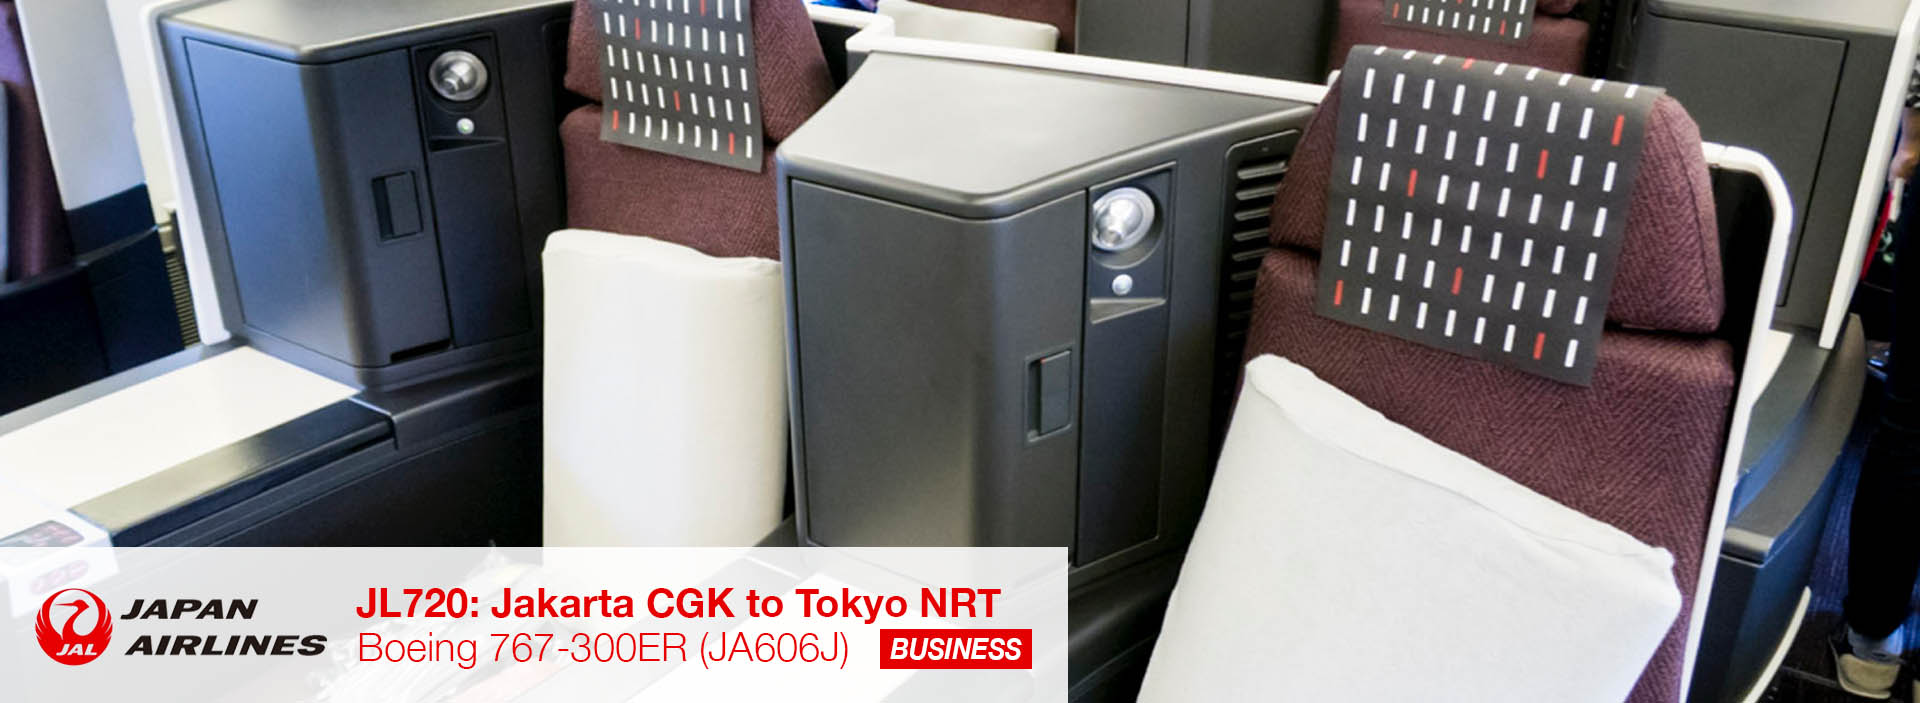 Review: JAL 767-300ER from Jakarta CGK to Tokyo NRT in Business